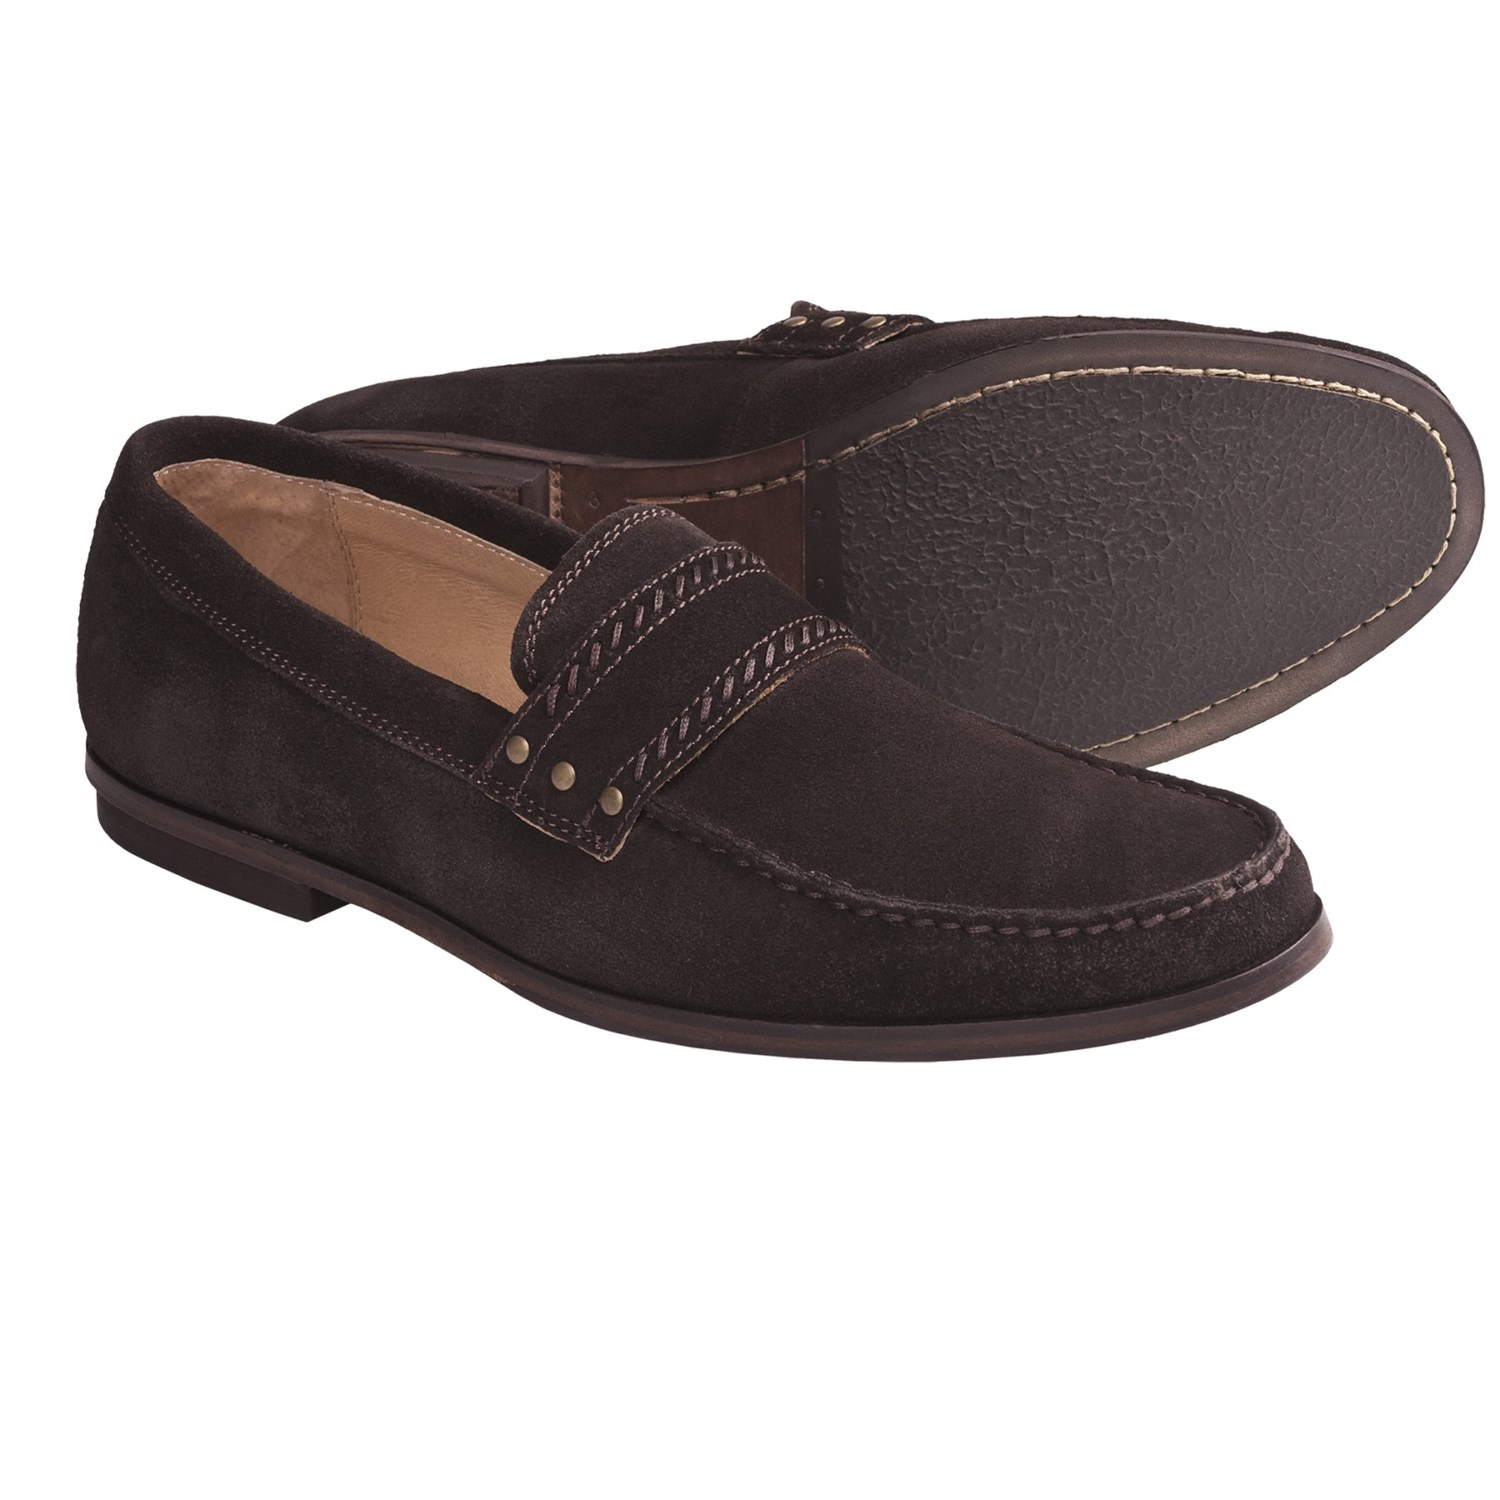 Founded in , Allen Edmonds Shoe Corporation is a U.S. based manufacturer of premium men's footwear and accessories. We have been creating timeless, custom-made men's dress shoes and casual shoes since